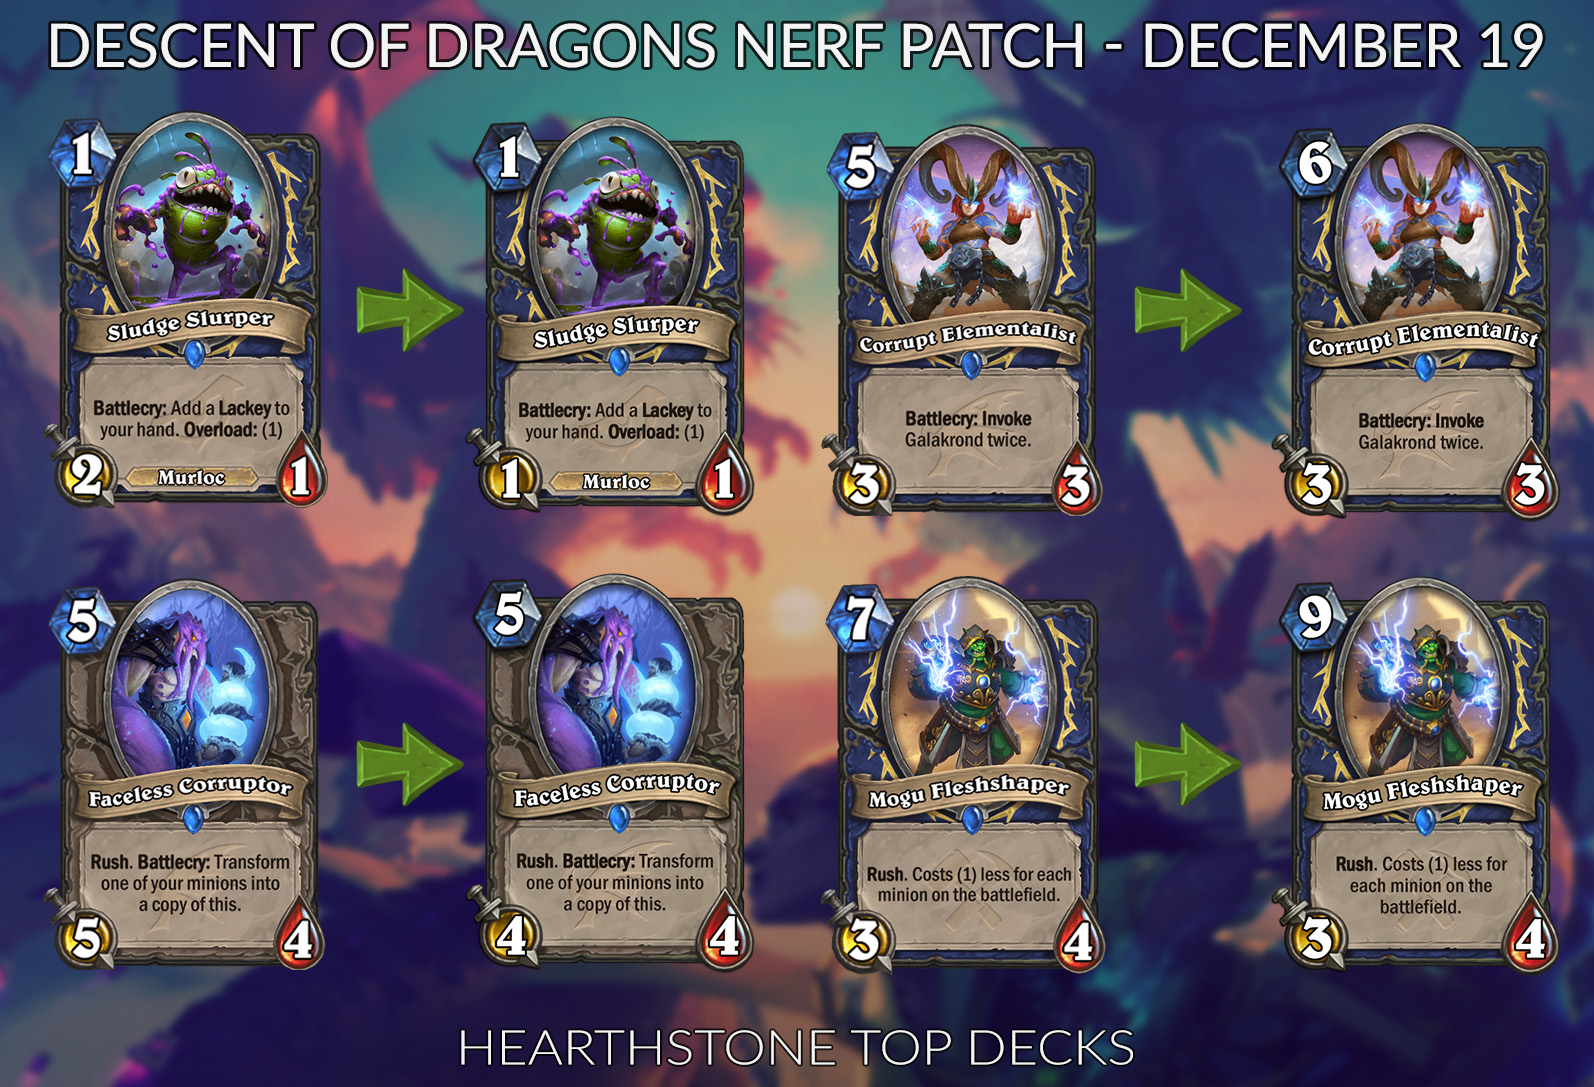 Descent Of Dragons Post Nerf Meta Decks Best Hearthstone Pro Streamer Deck Lists For All Classes Hearthstone Top Decks